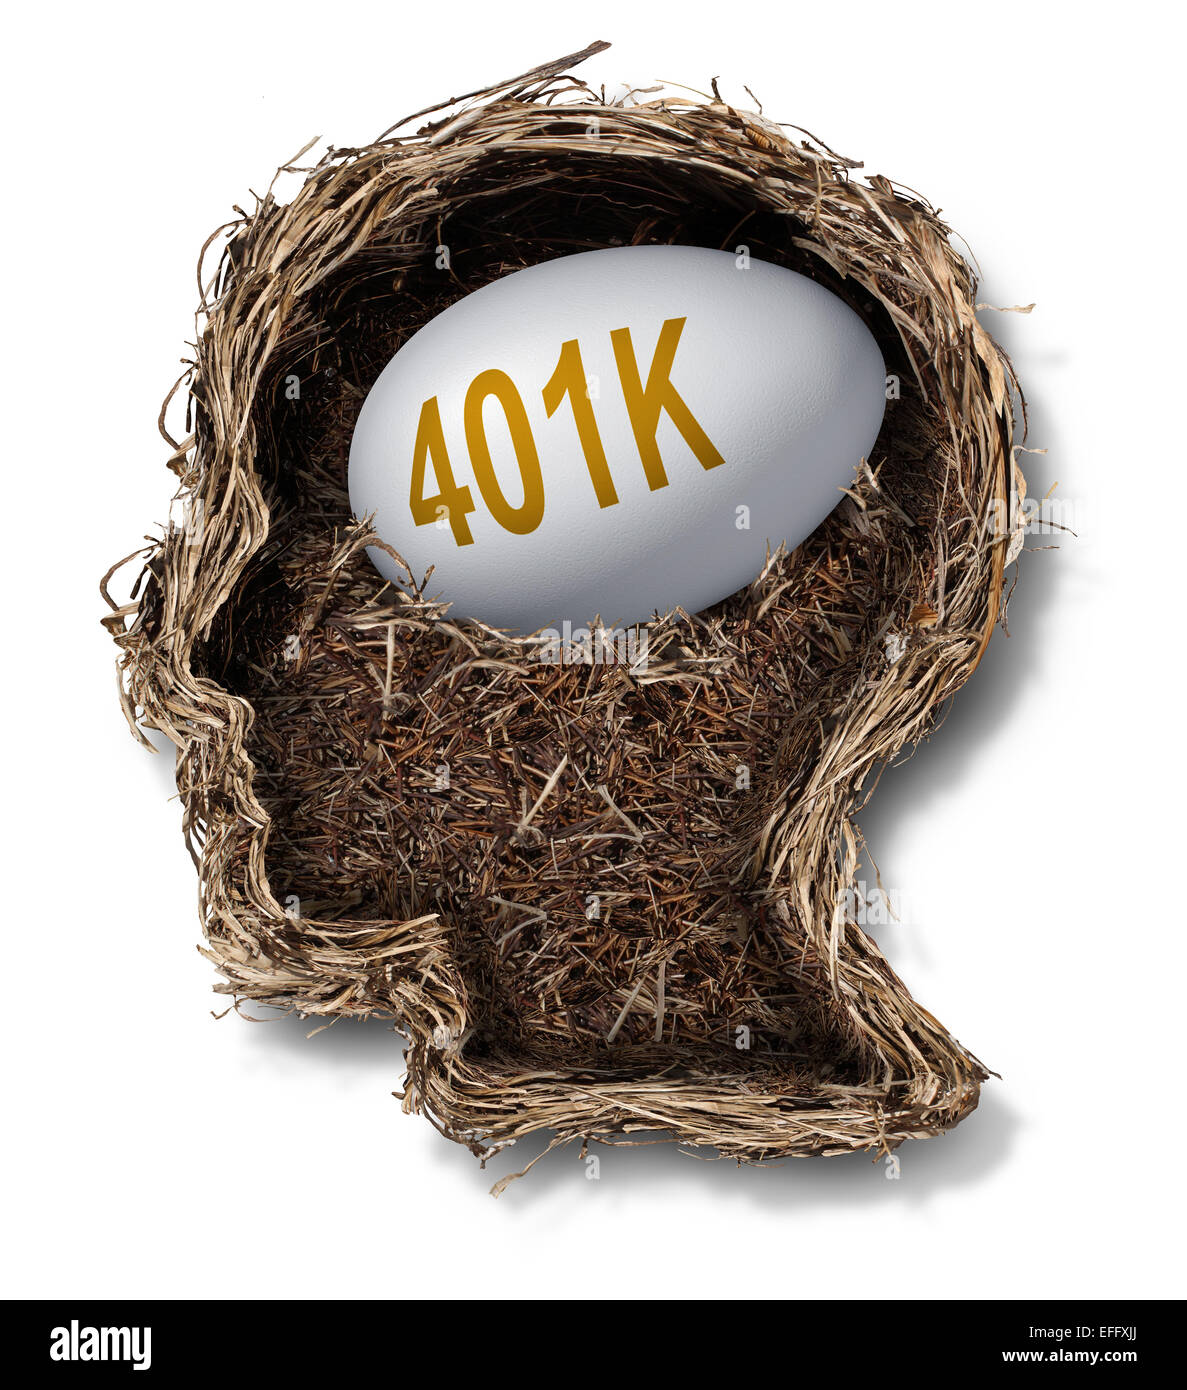 401k plan financial concept as a nest egg pension fund investment in a bird nest shaped as a human head as a wealth - Stock Image